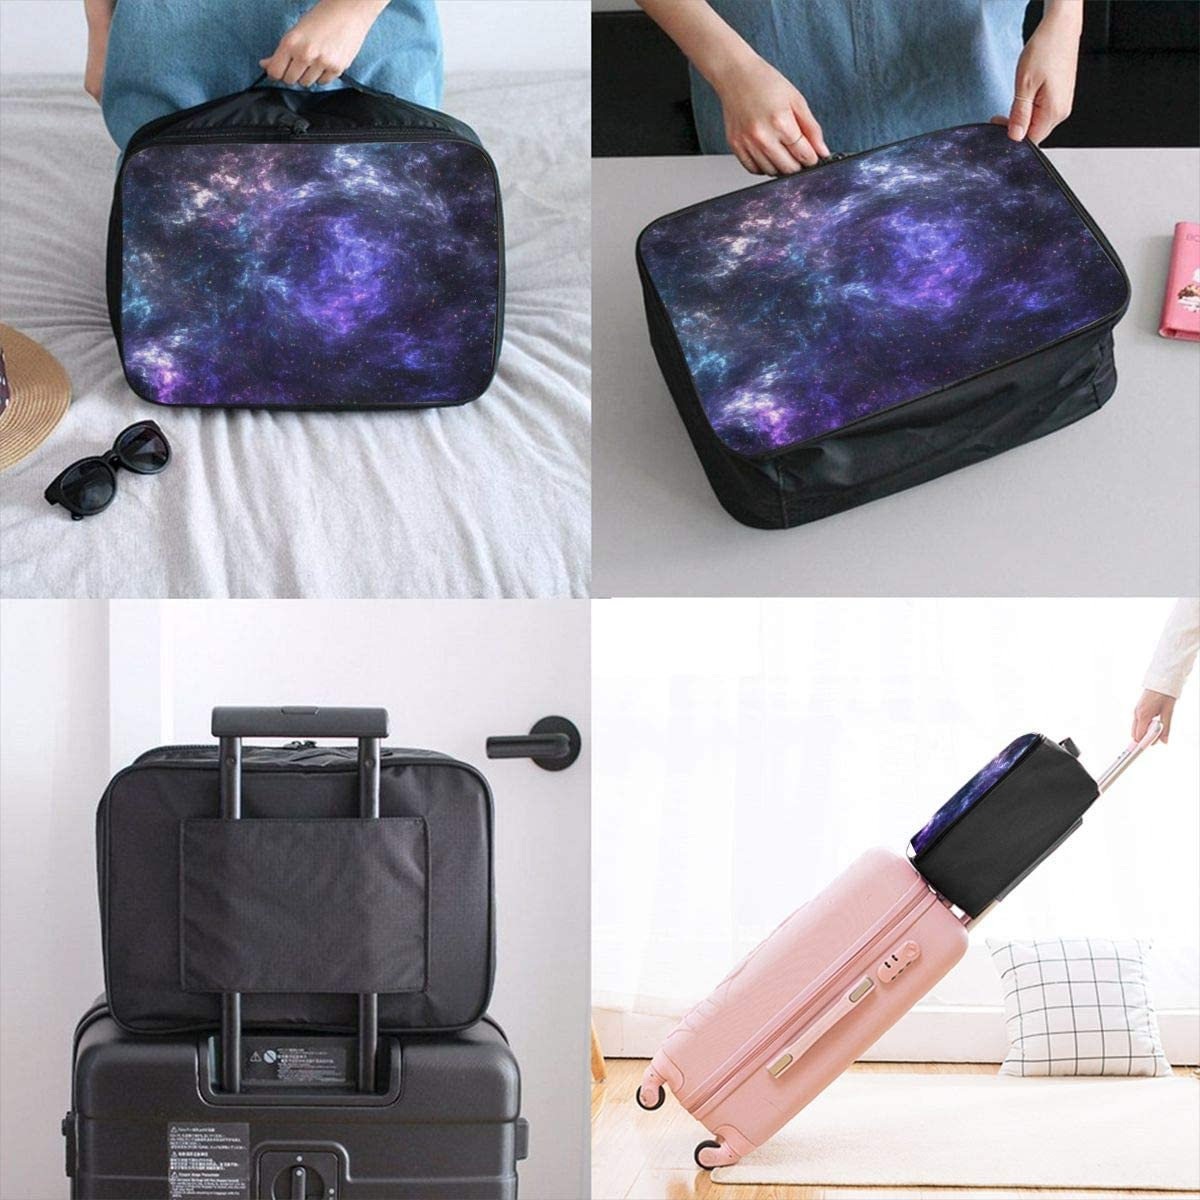 Yunshm Galaxy Stars Nebulae Clusters Customized Trolley Handbag Waterproof Unisex Large Capacity For Business Travel Storage